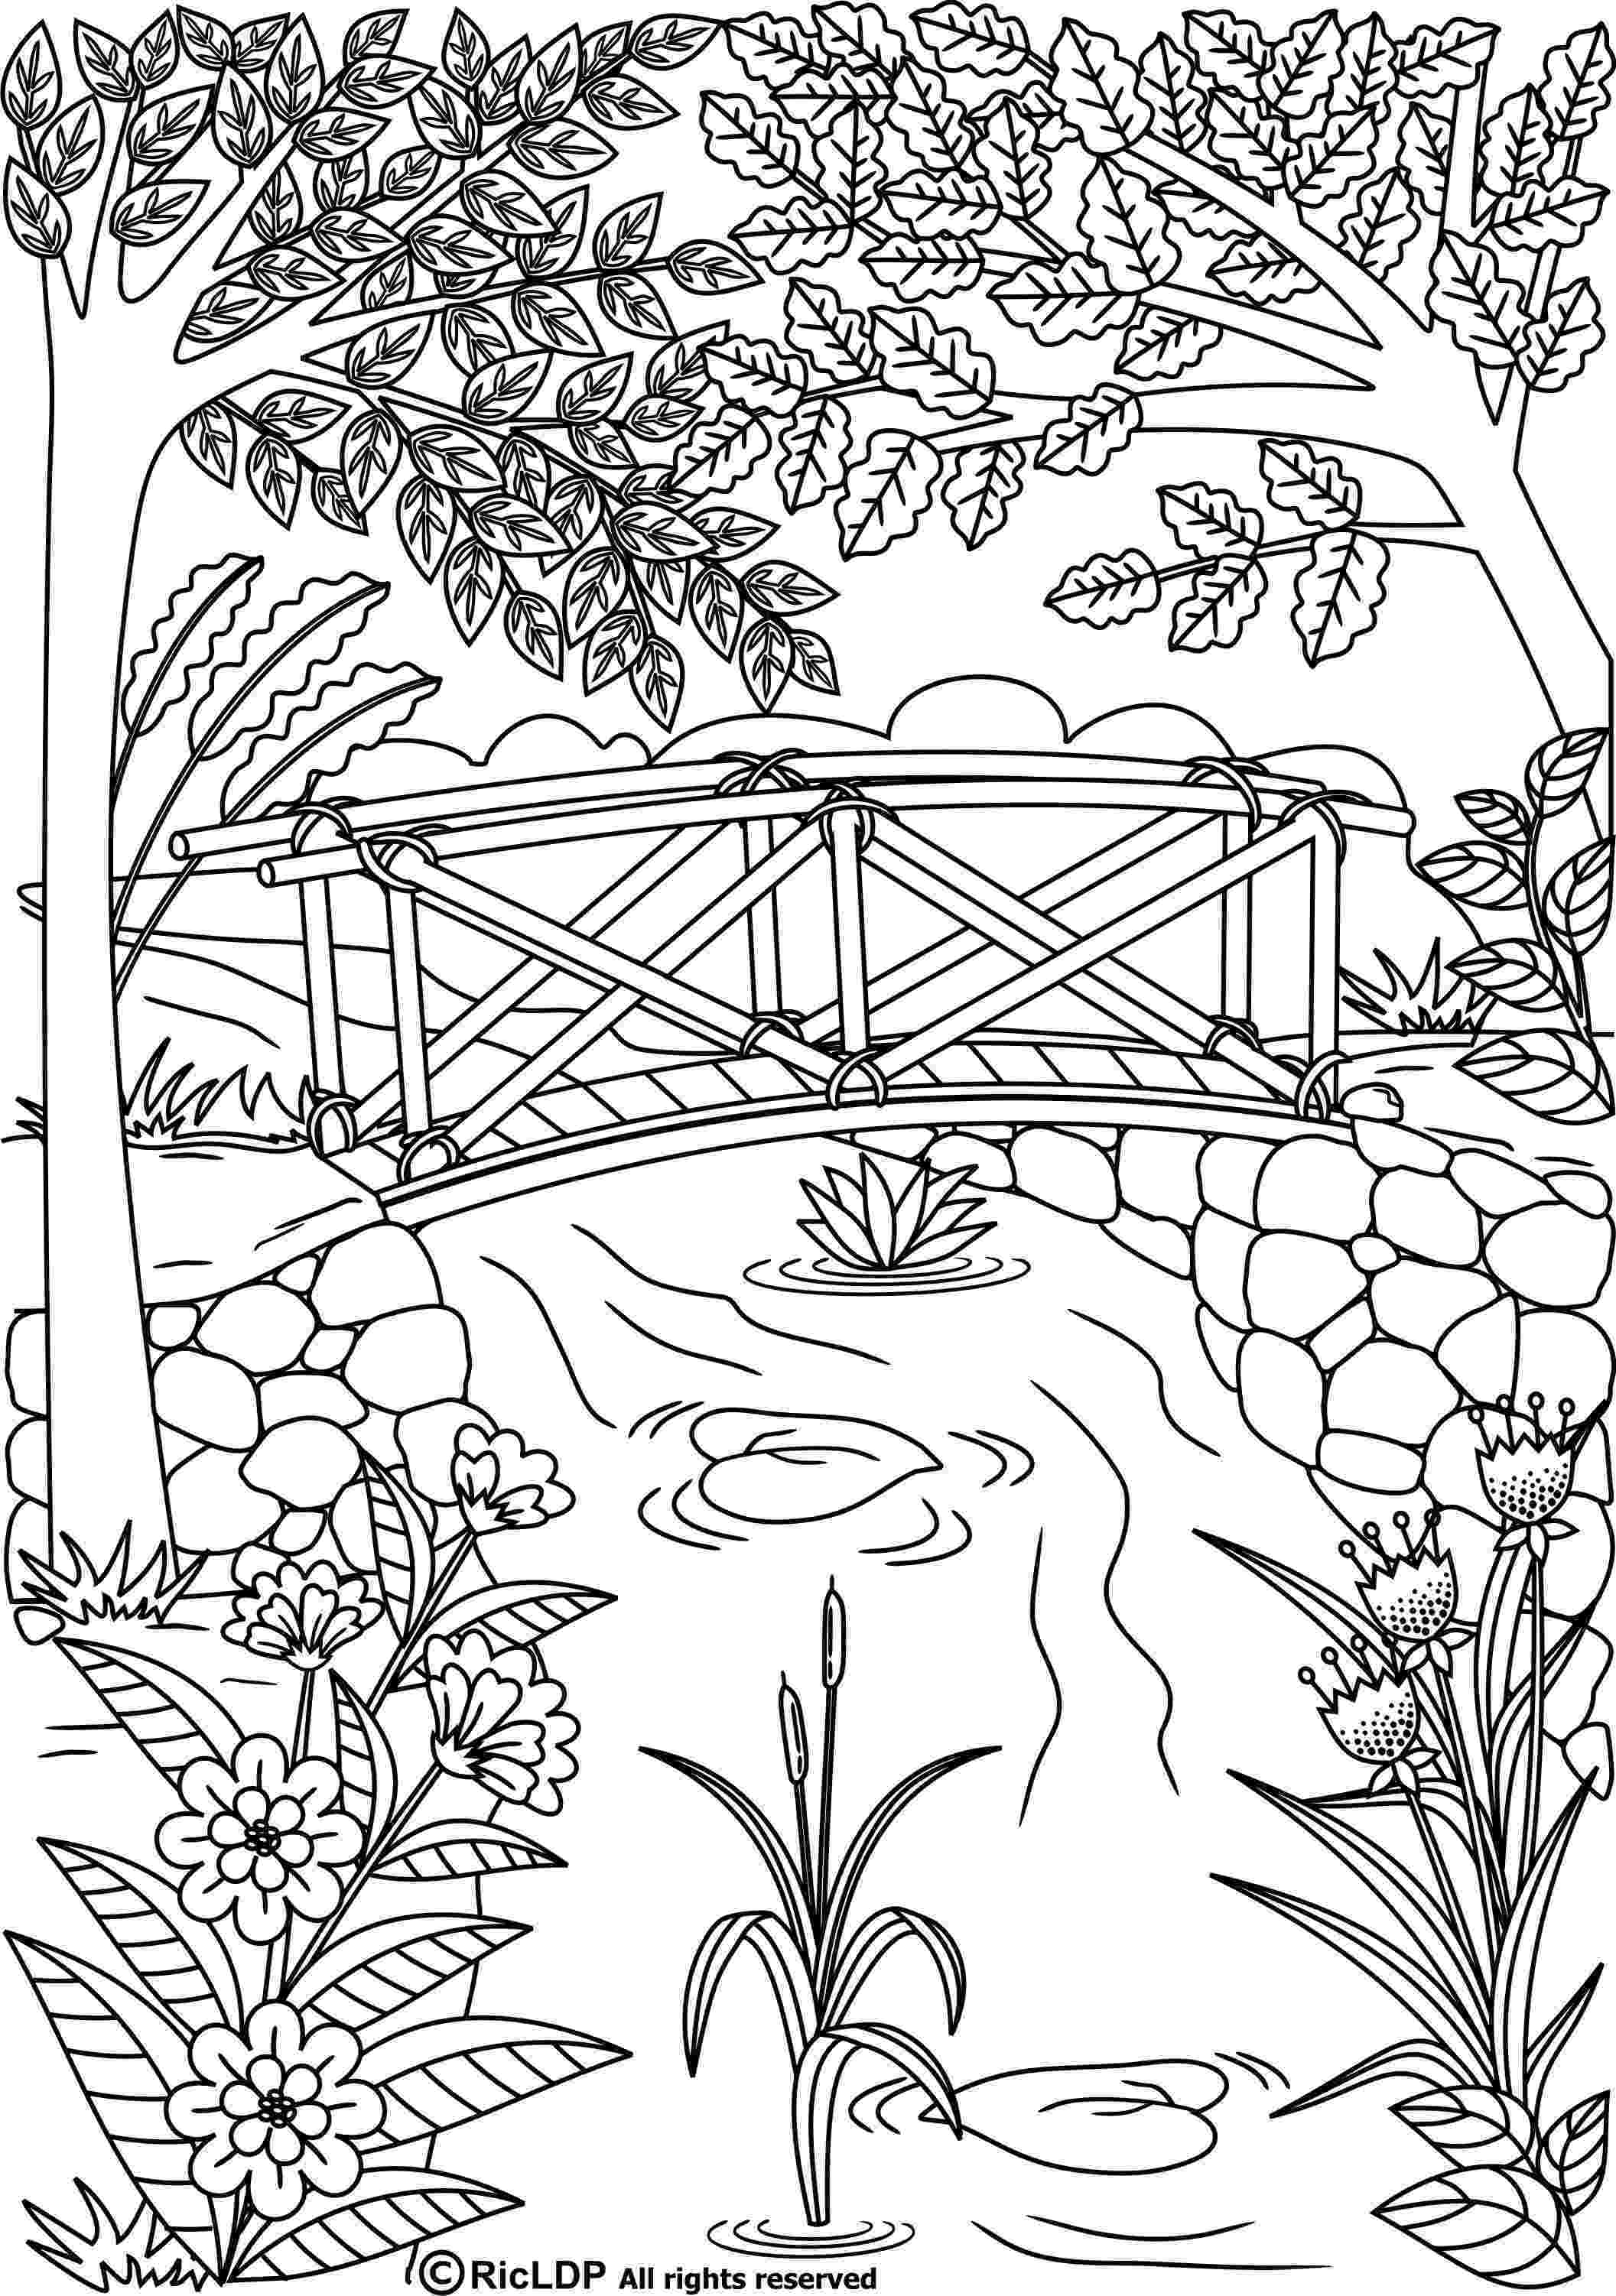 coloring book for grown ups printable 584 best colouring pages for grown ups images on pinterest ups coloring grown printable for book